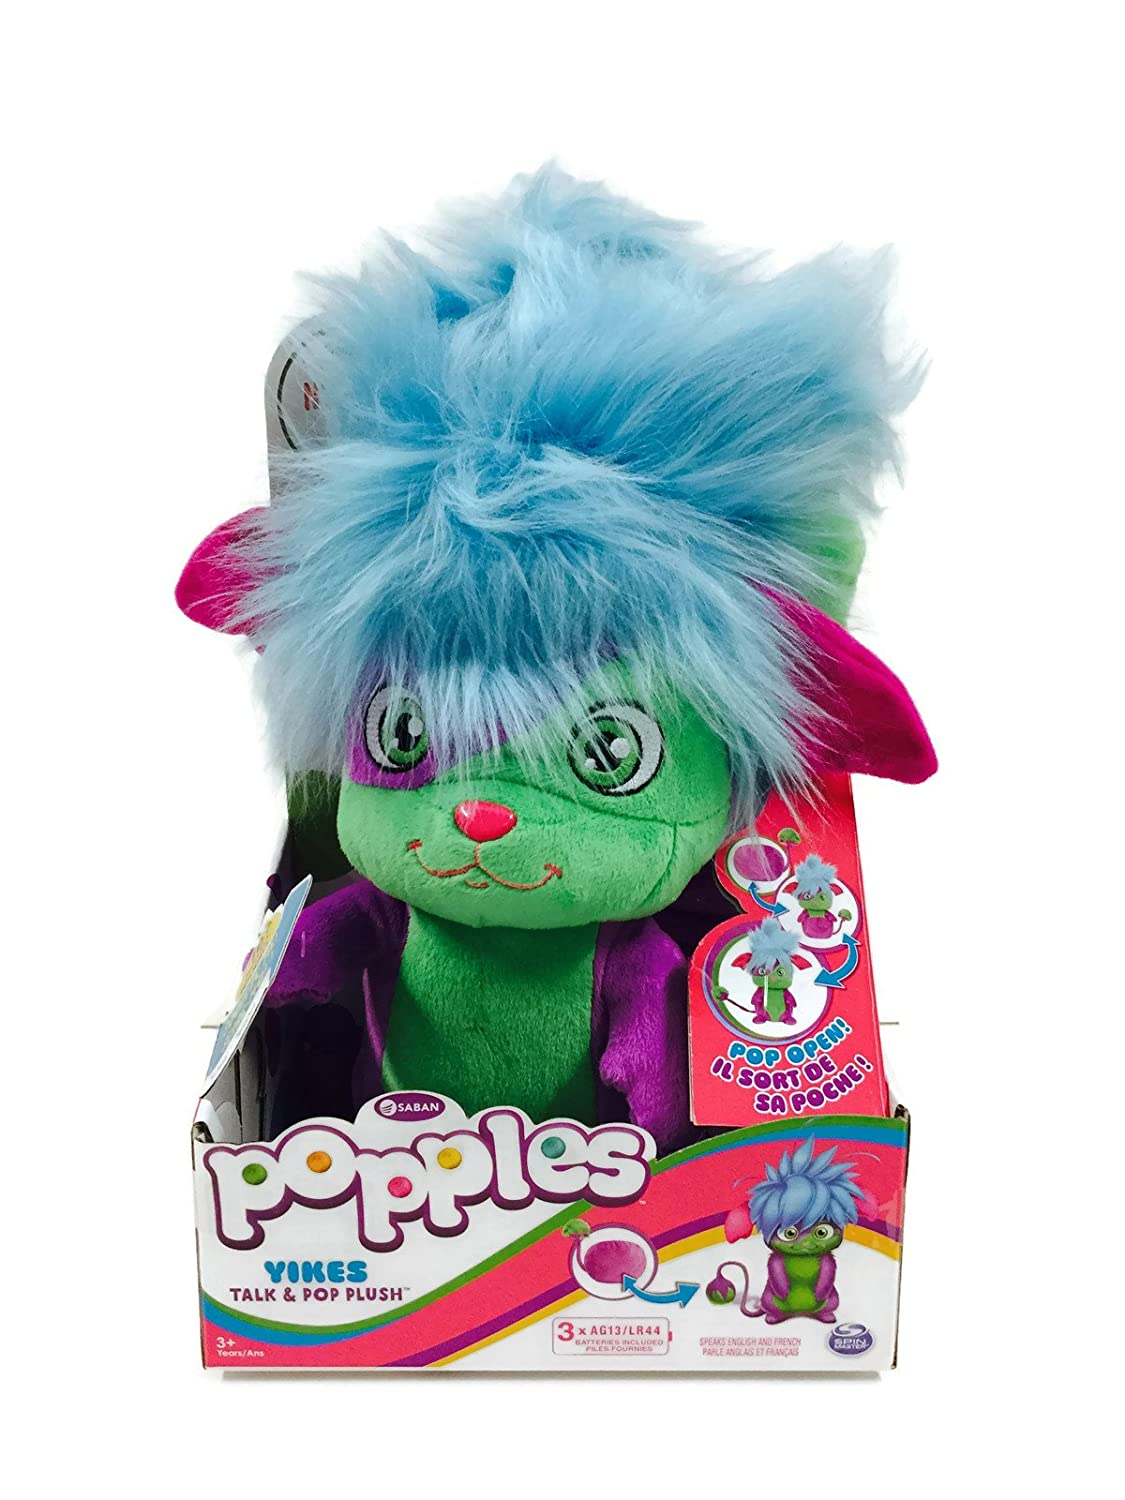 Popples Talk and Pop Plush Yikes